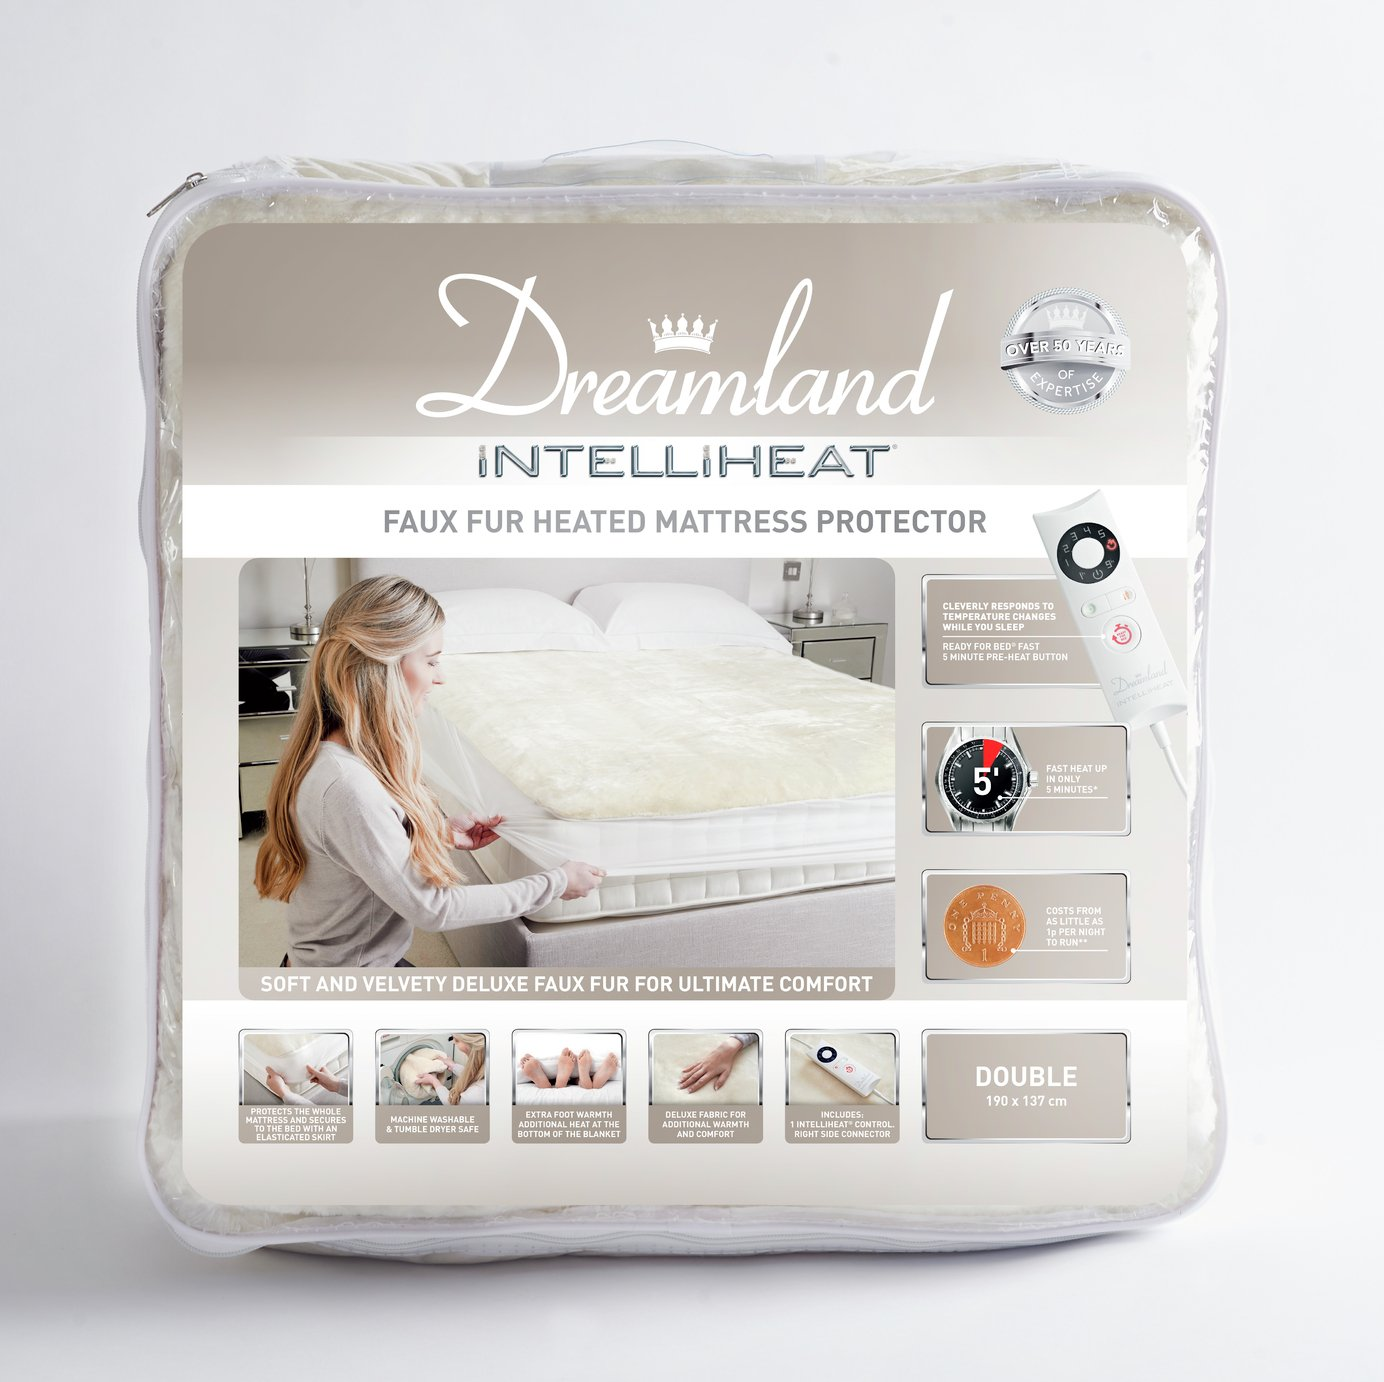 Dreamland Intelliheat Faux Fur Mattress Protector - Single